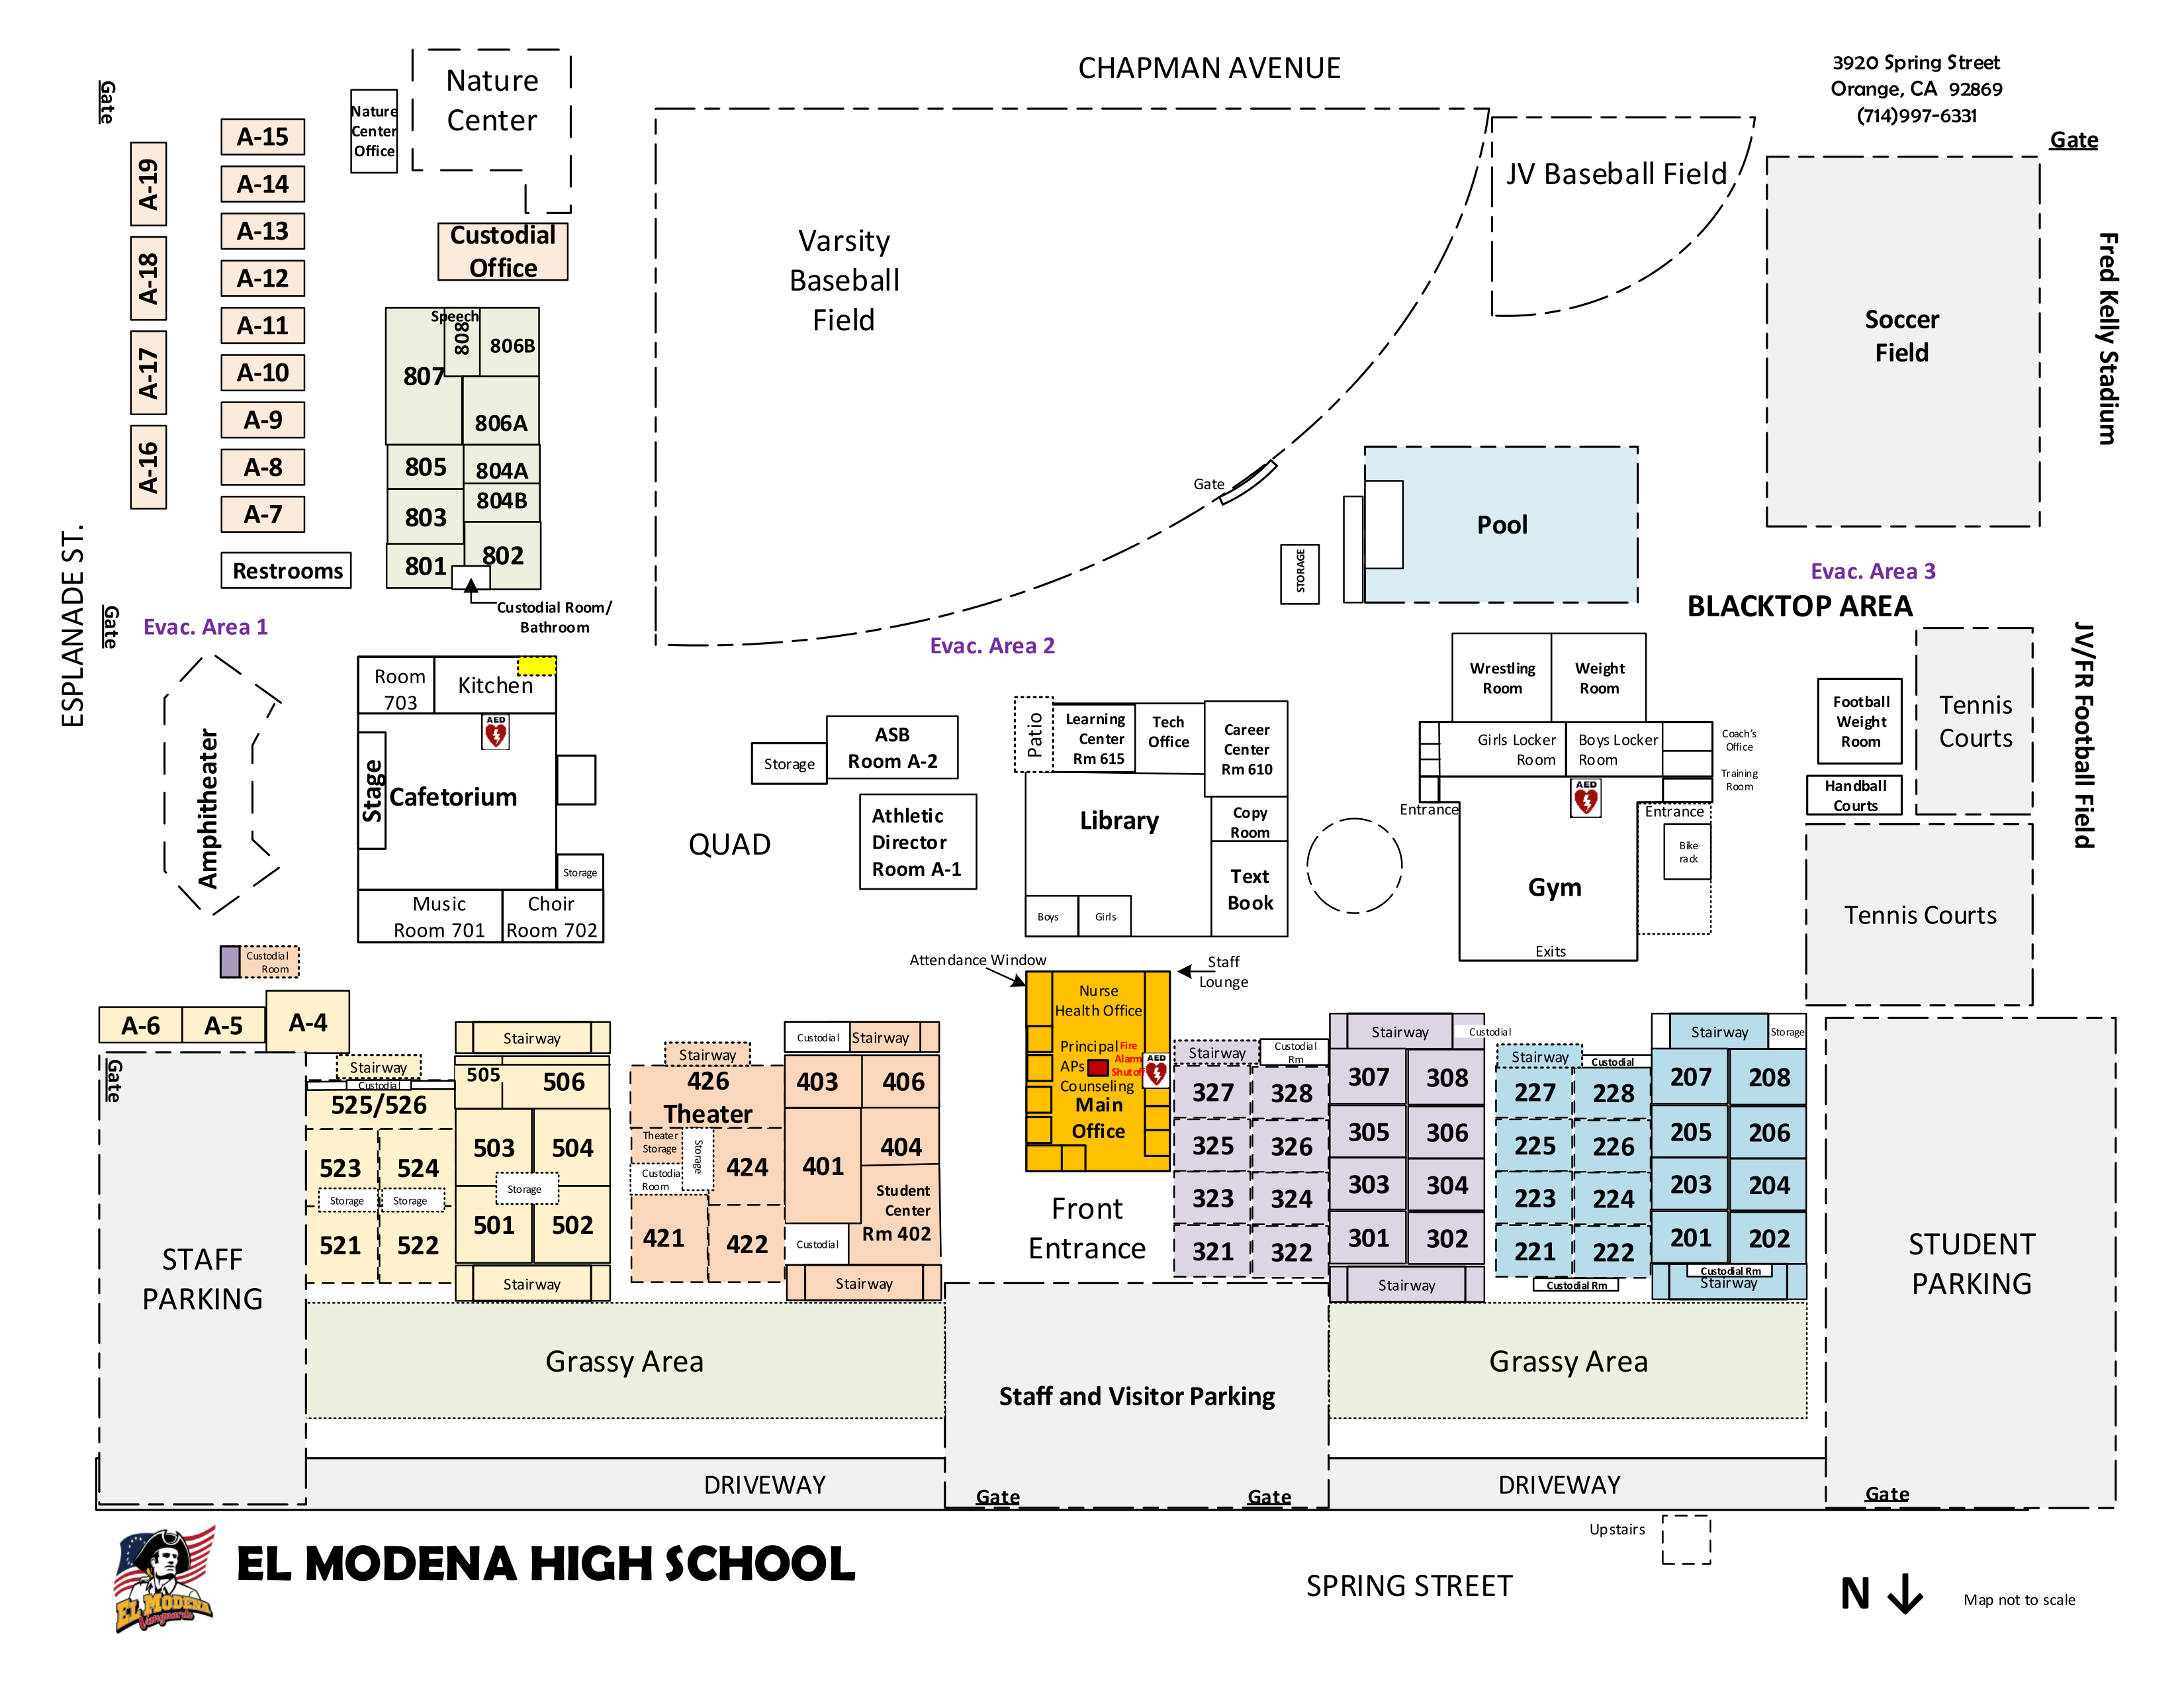 EMHS Campus Map